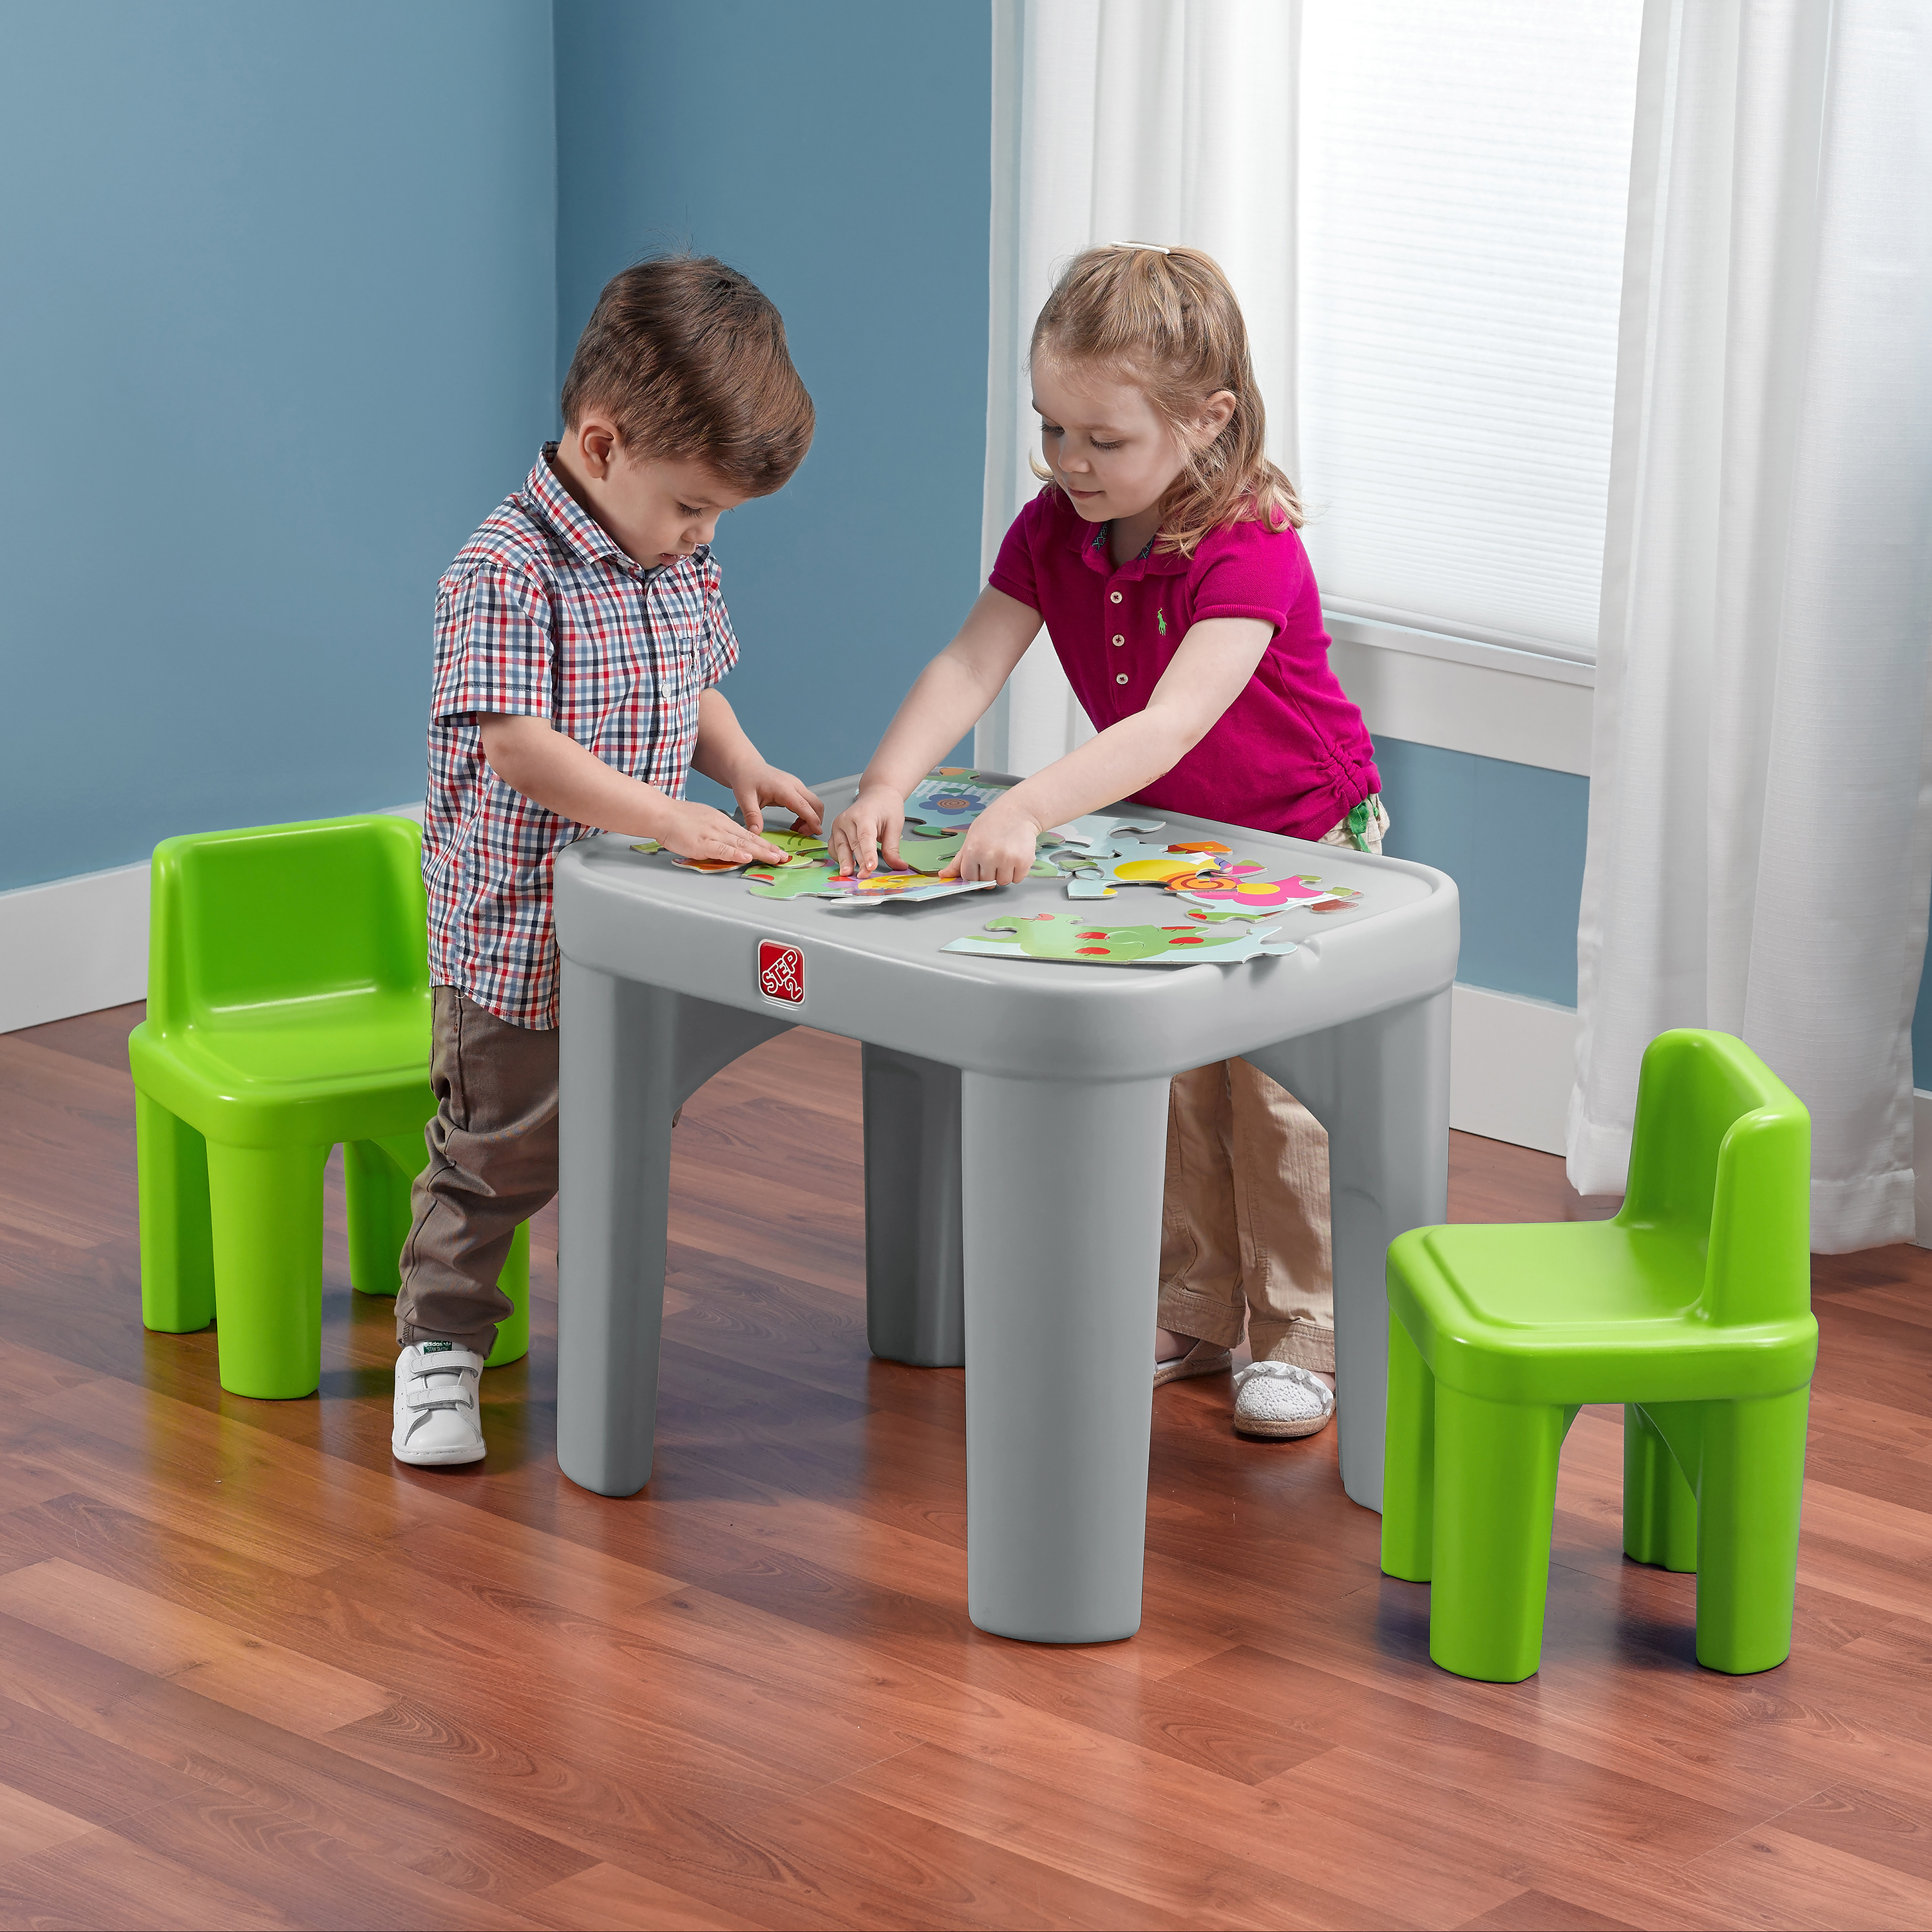 Kids Kitchen Table: Step2 Toy Awards: Favorite Toy Of 2015 + GIVEAWAY!